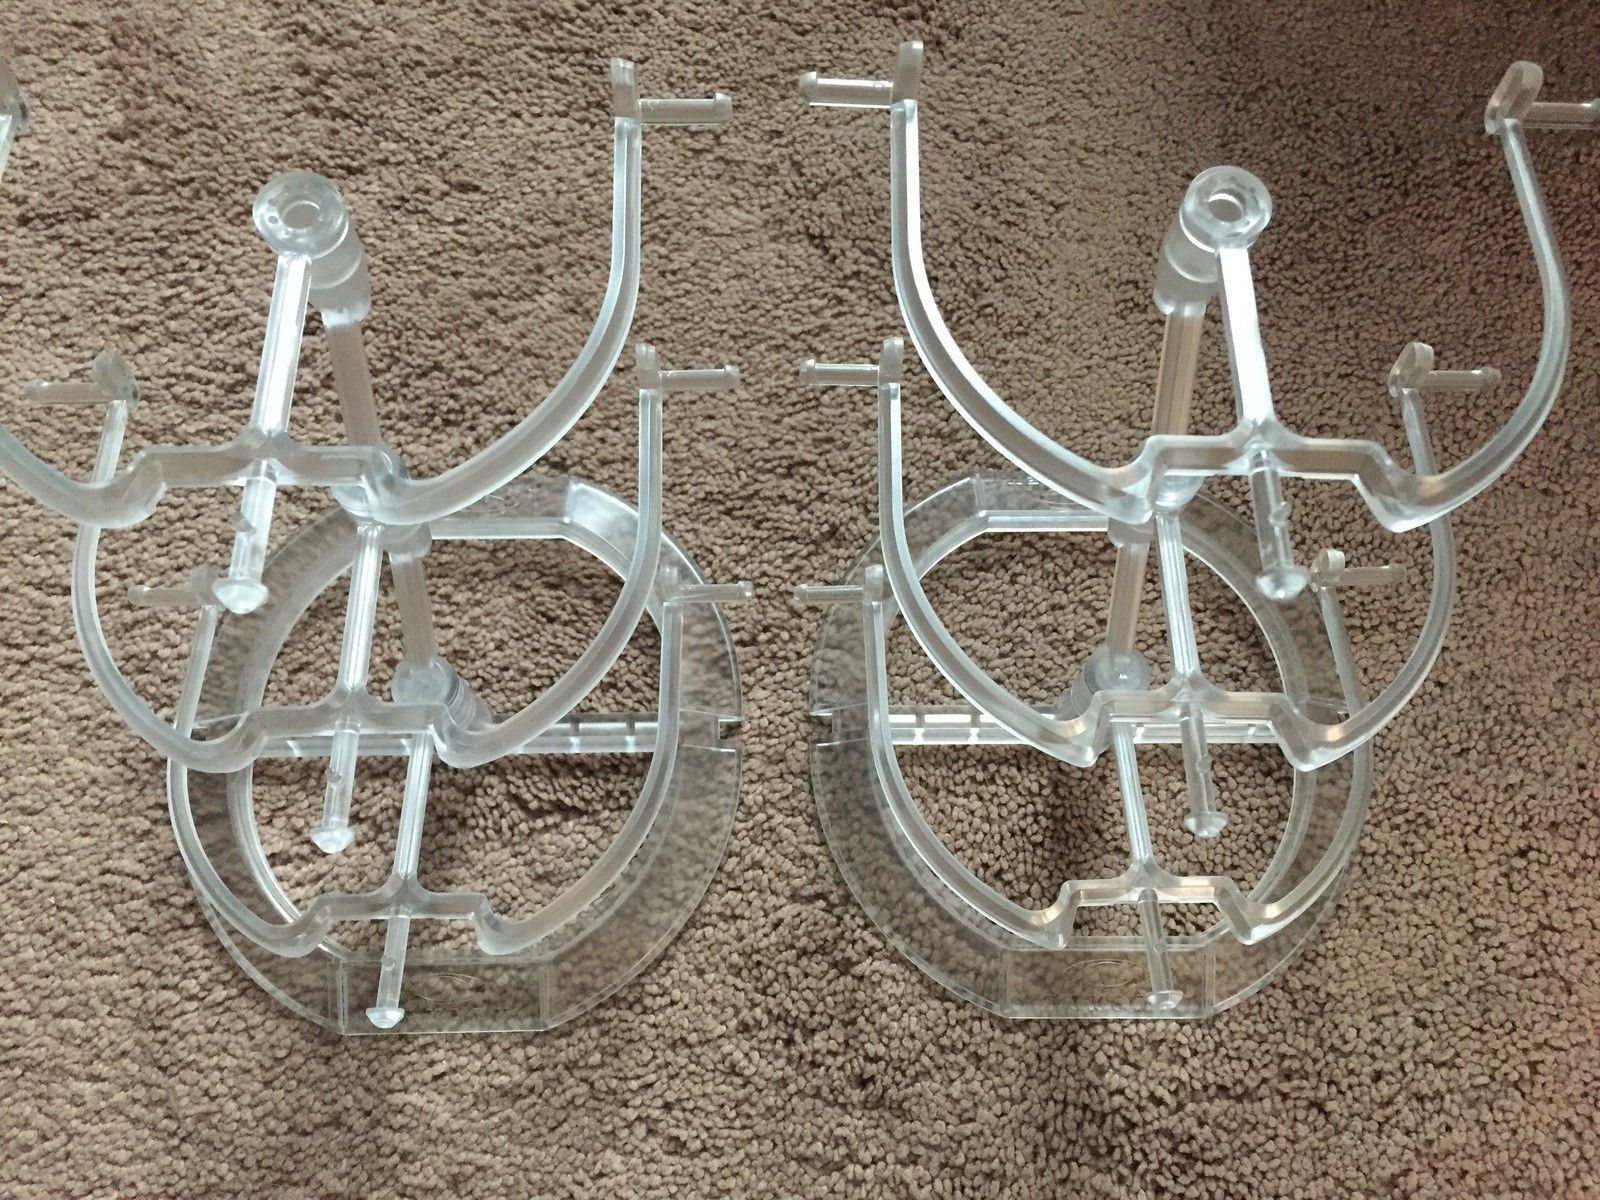 2 - Triple 4.0 Clear Risers - stands_17395024232_o.jpg